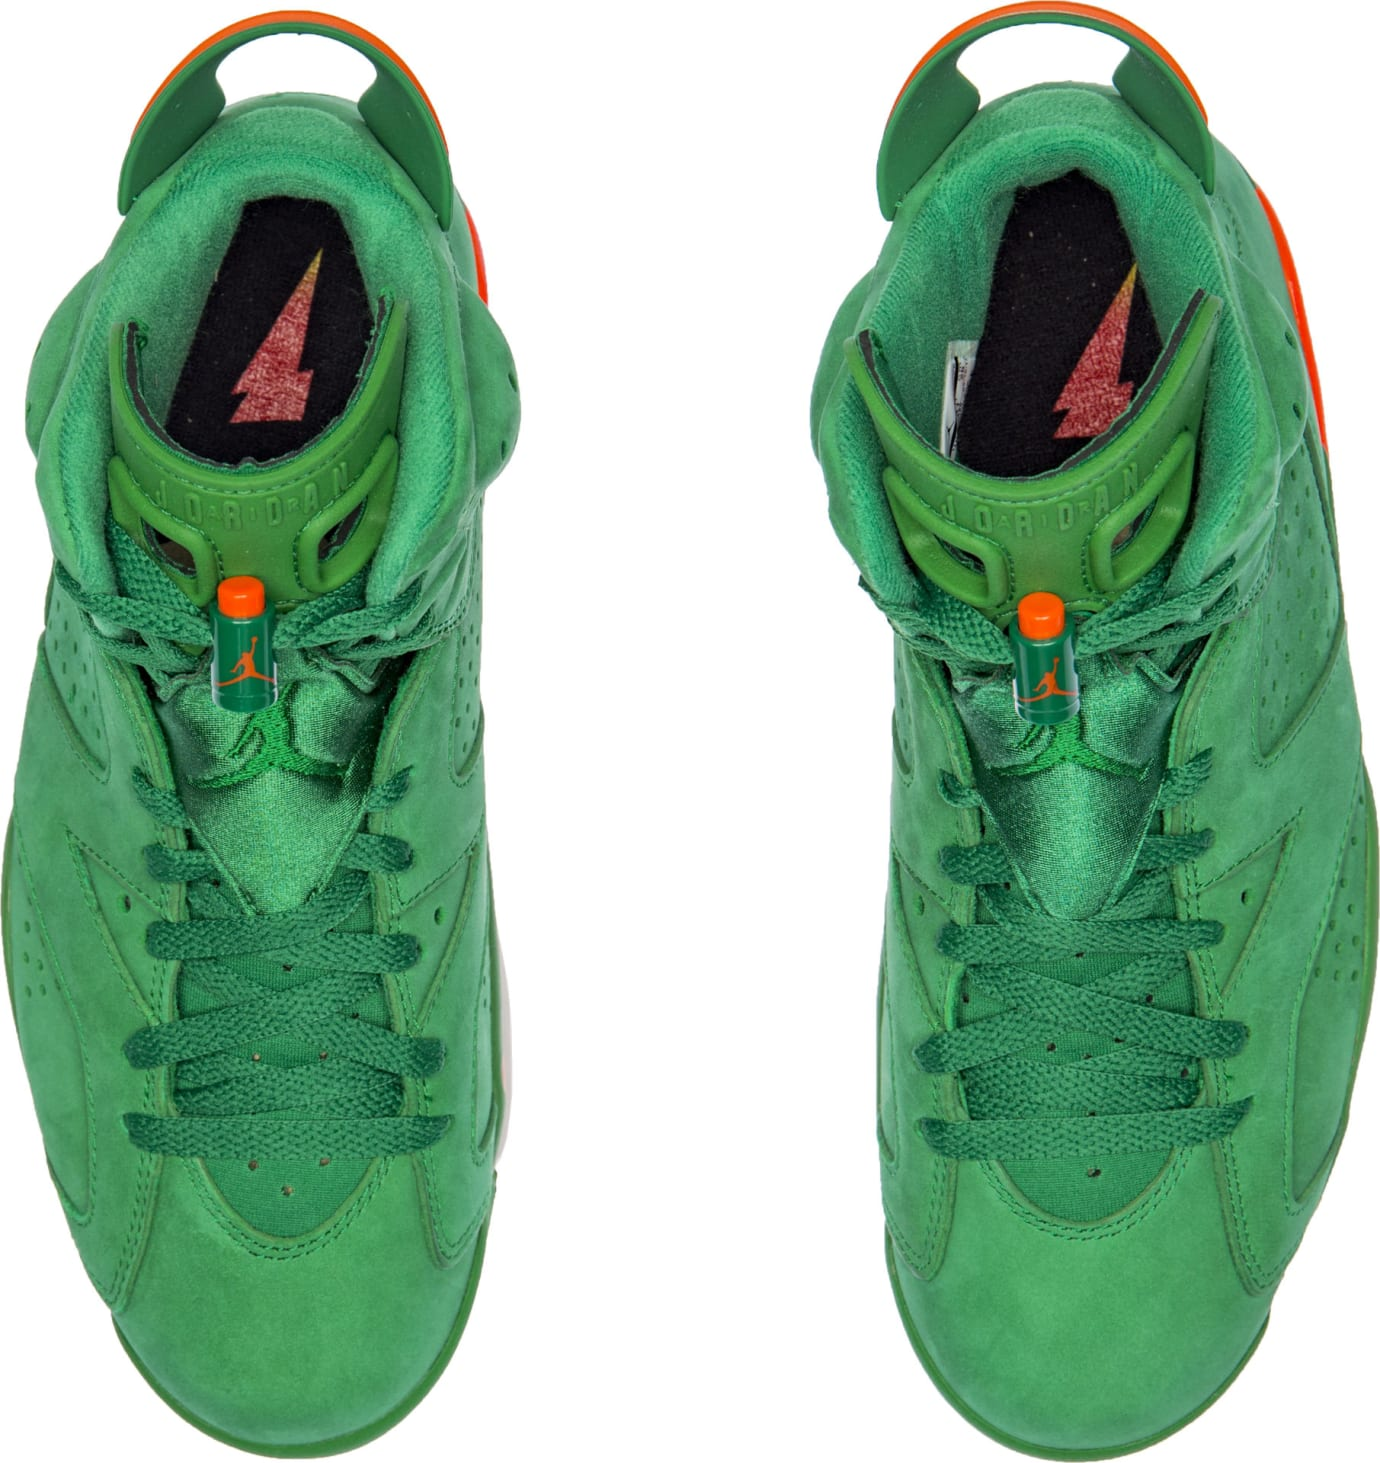 Air Jordan 6 VI Gatorade Green Release Date AJ5986-335 Top 95a822a53